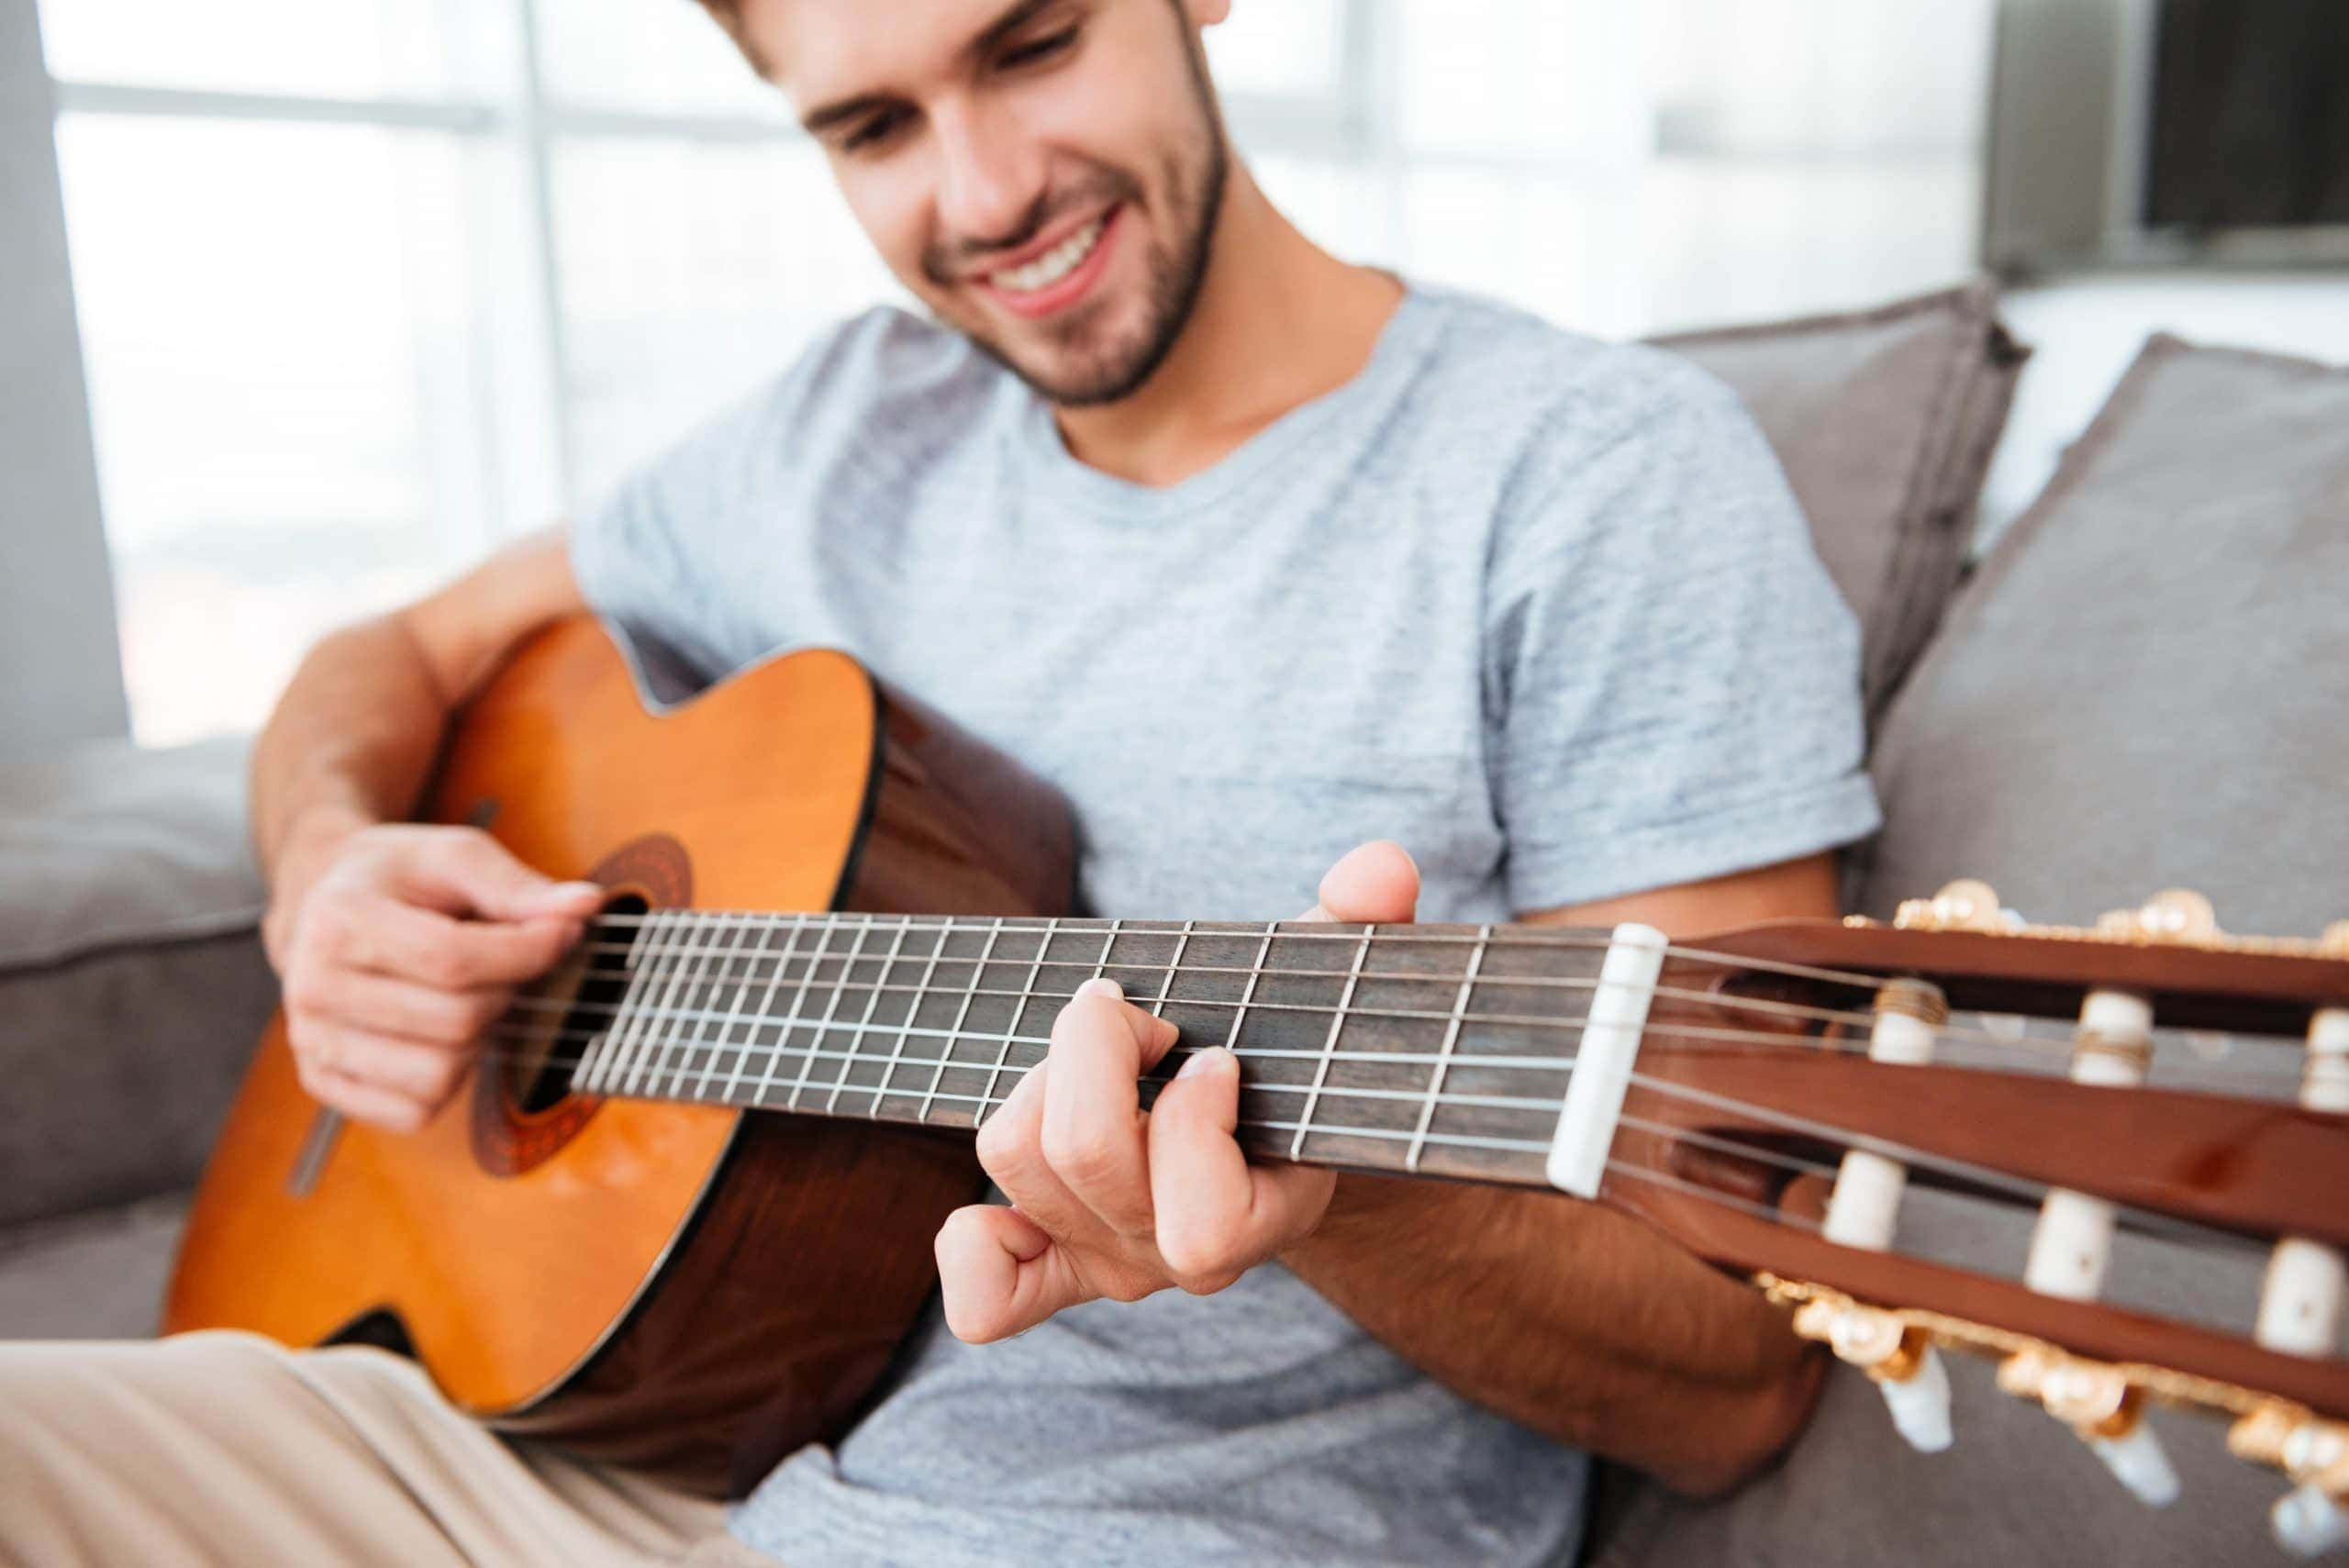 Playing the guitar while sitting